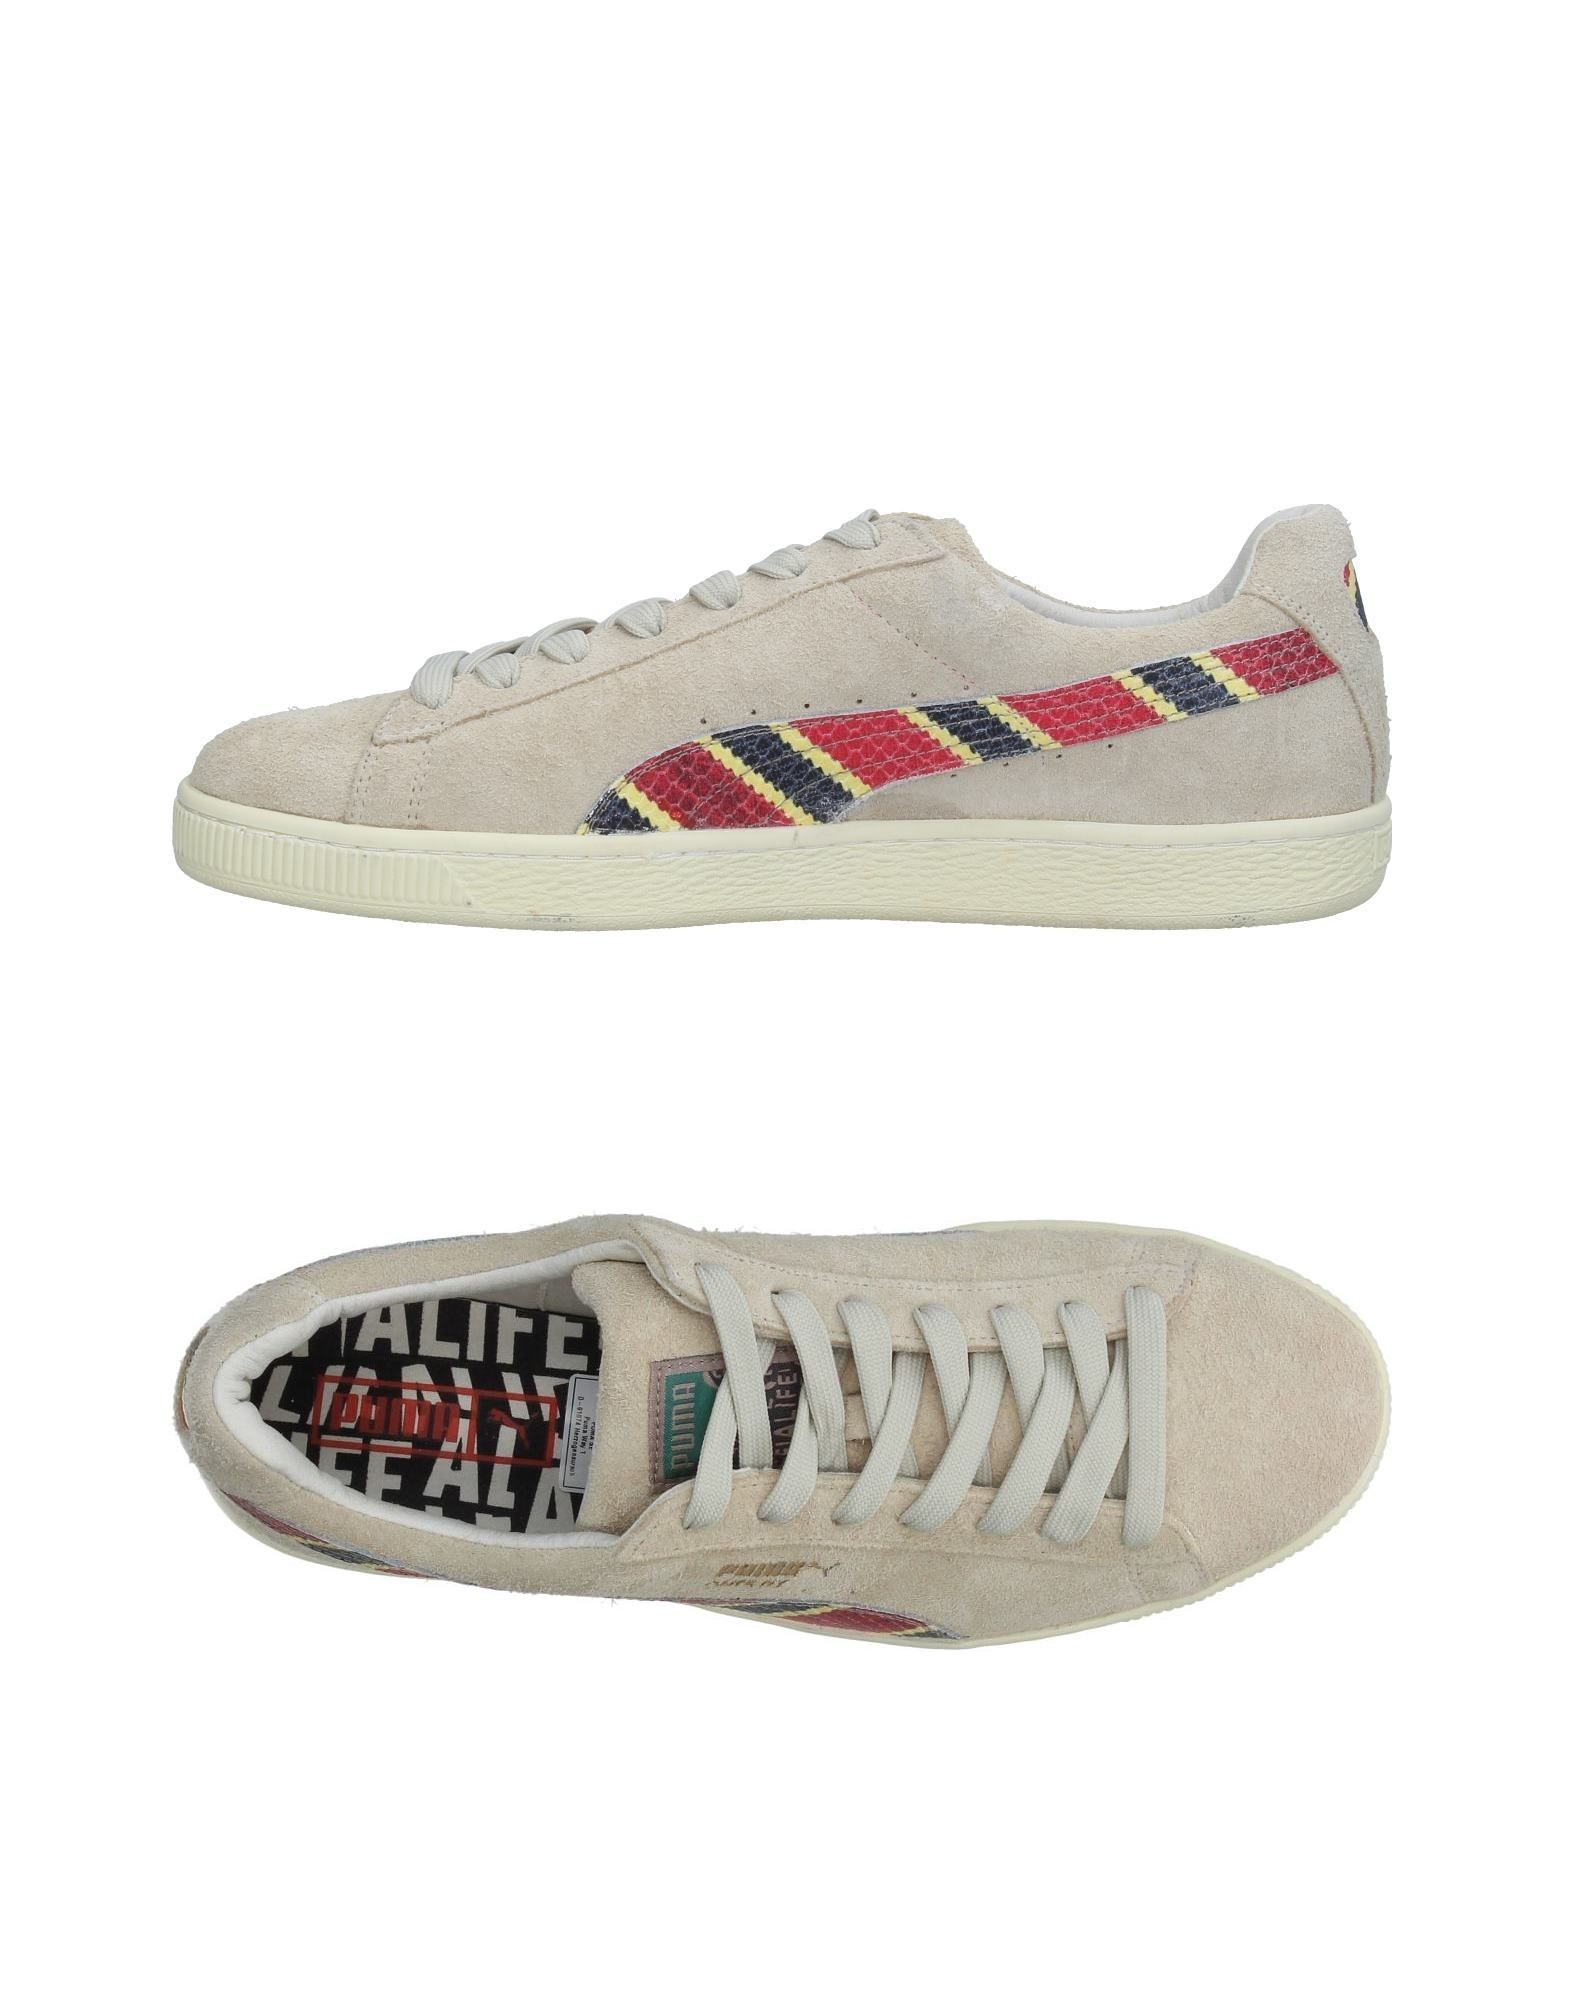 Sneakers Puma Alife Alife Homme - Sneakers Puma Alife Alife  Ivoire Chaussures casual sauvages c3930d